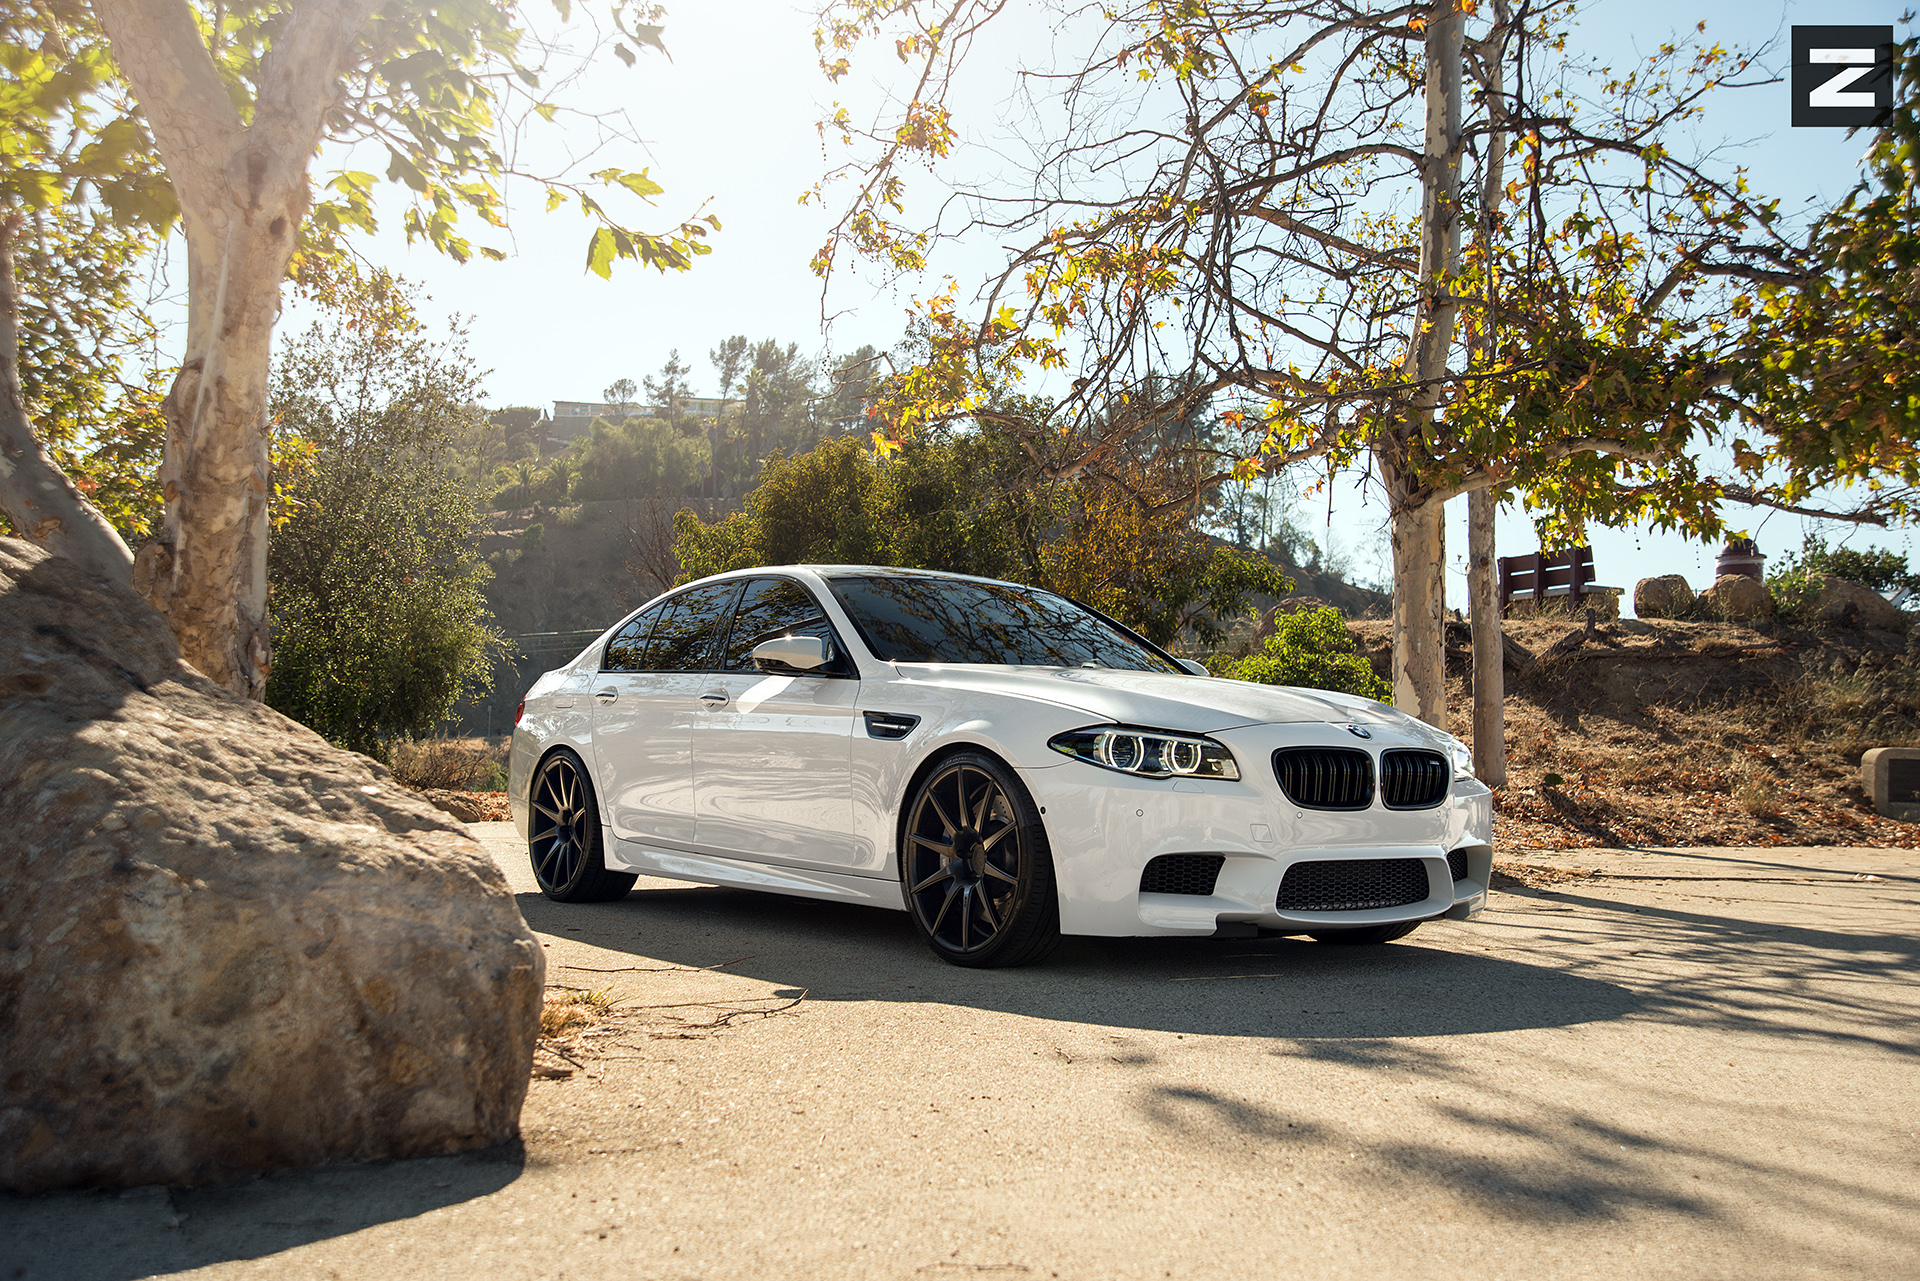 BMW F10 M5 White Black ZS03